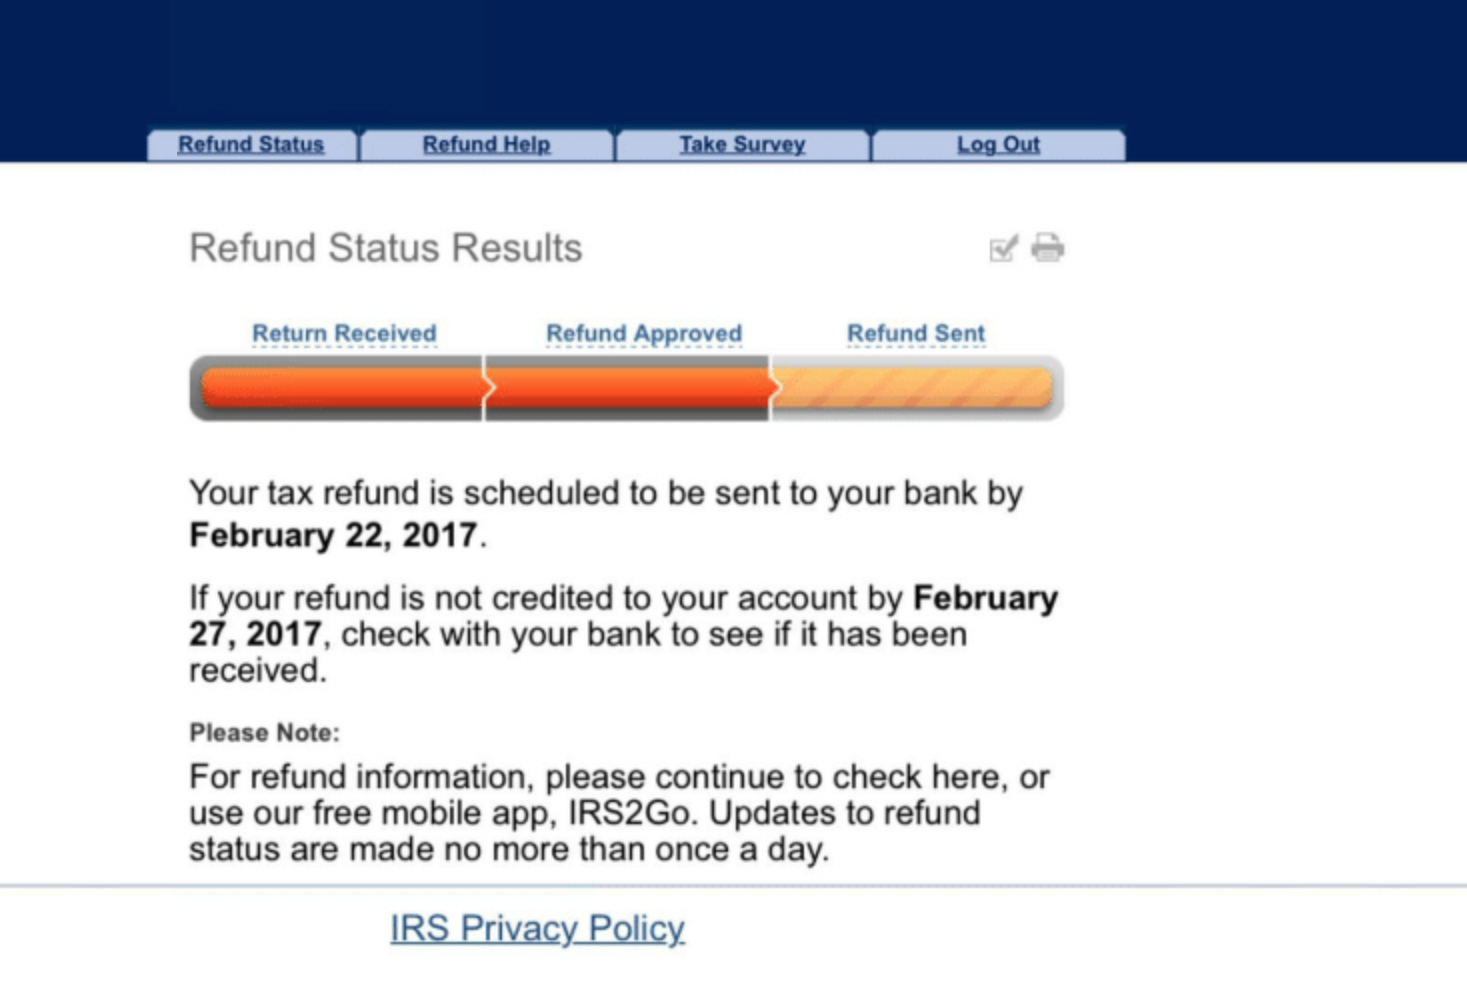 IRS Refund Status Results revised